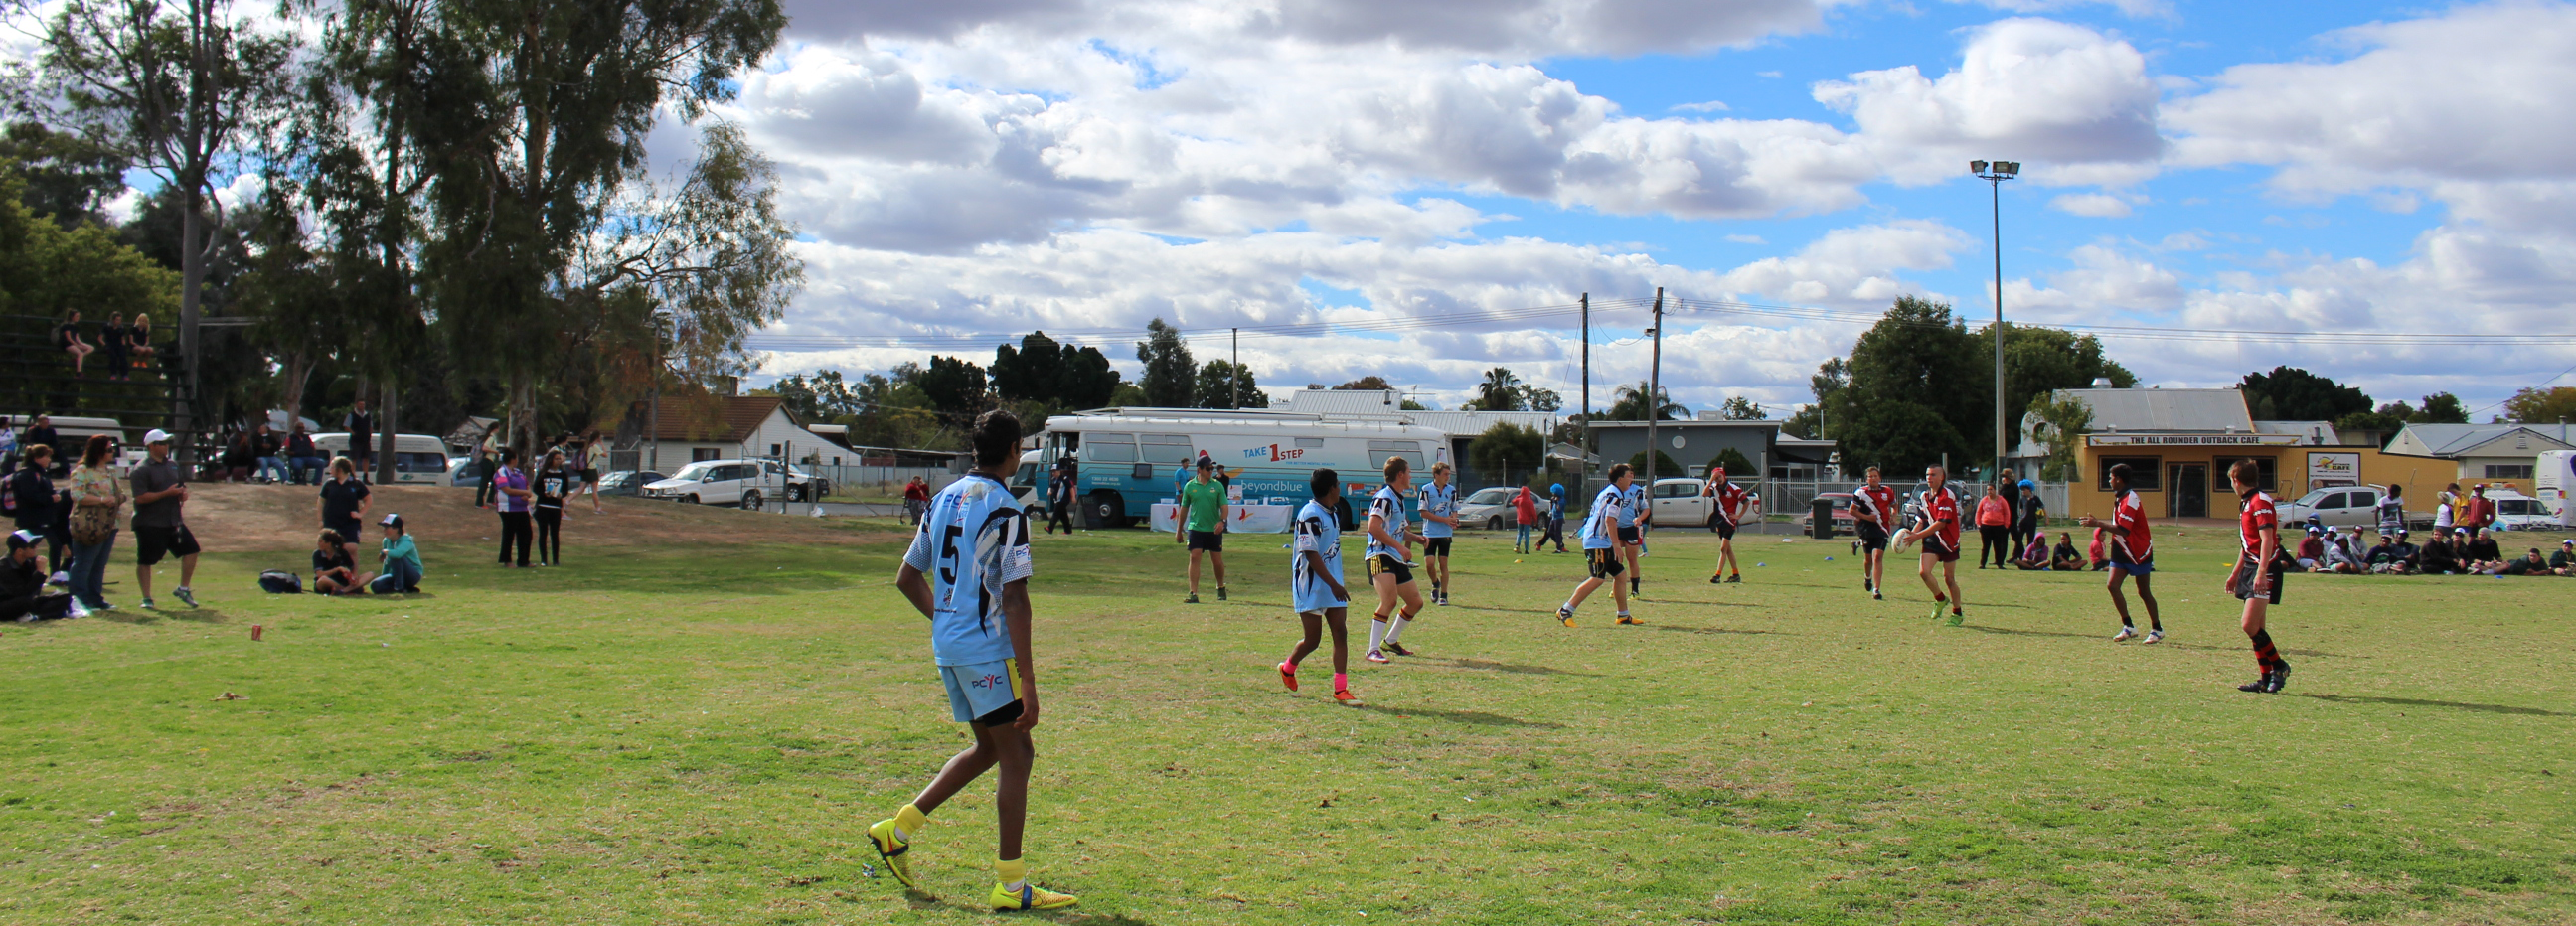 Hundreds of students from schools across far west NSW battled it out on the field at Ronnie Gibbs Gala Day in Bourke.